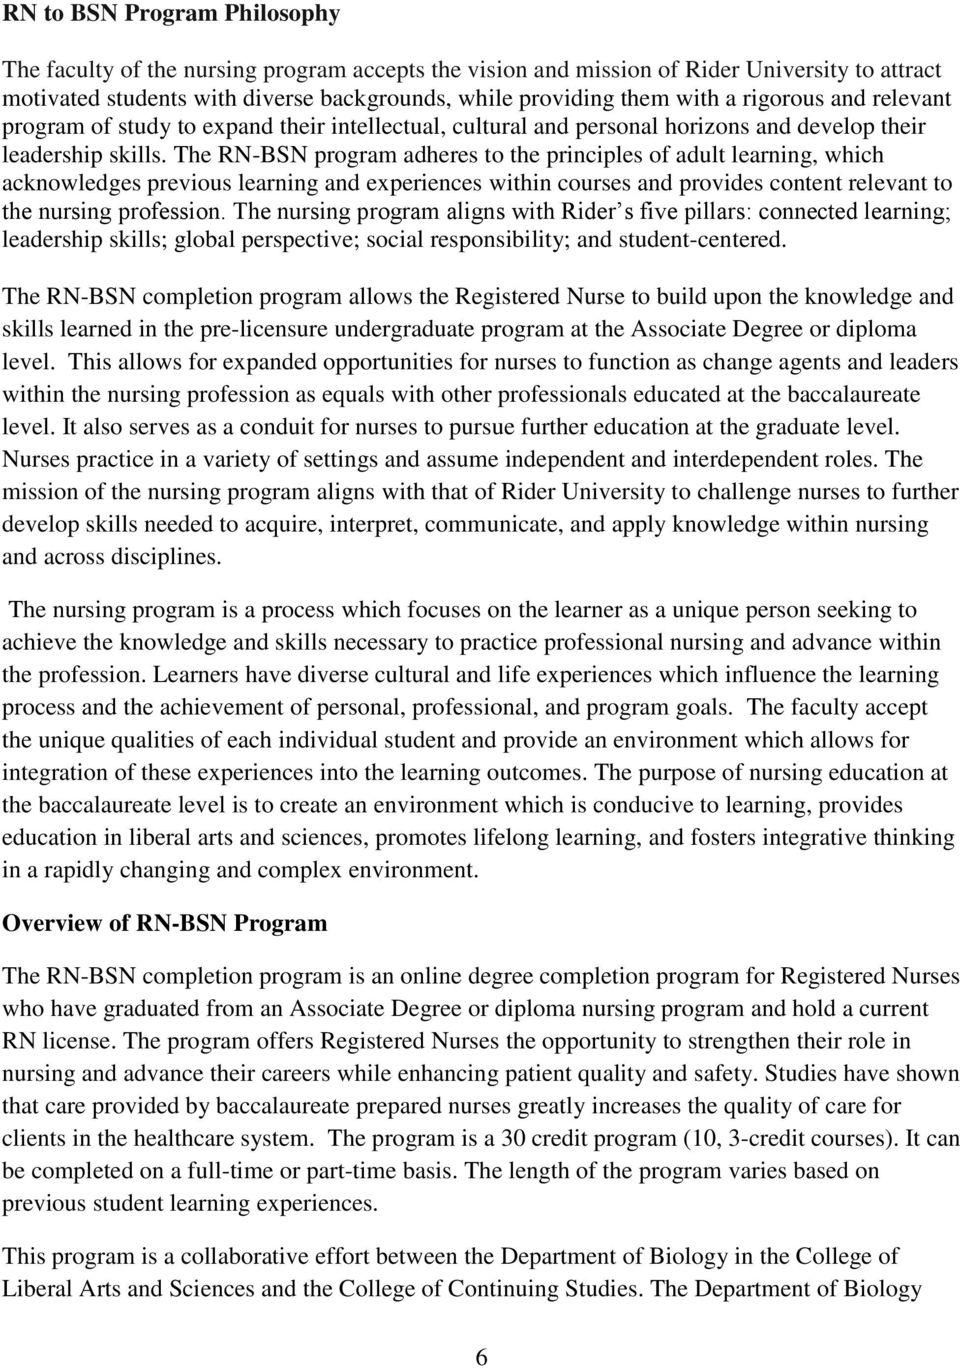 The RN-BSN program adheres to the principles of adult learning, which acknowledges previous learning and experiences within courses and provides content relevant to the nursing profession.